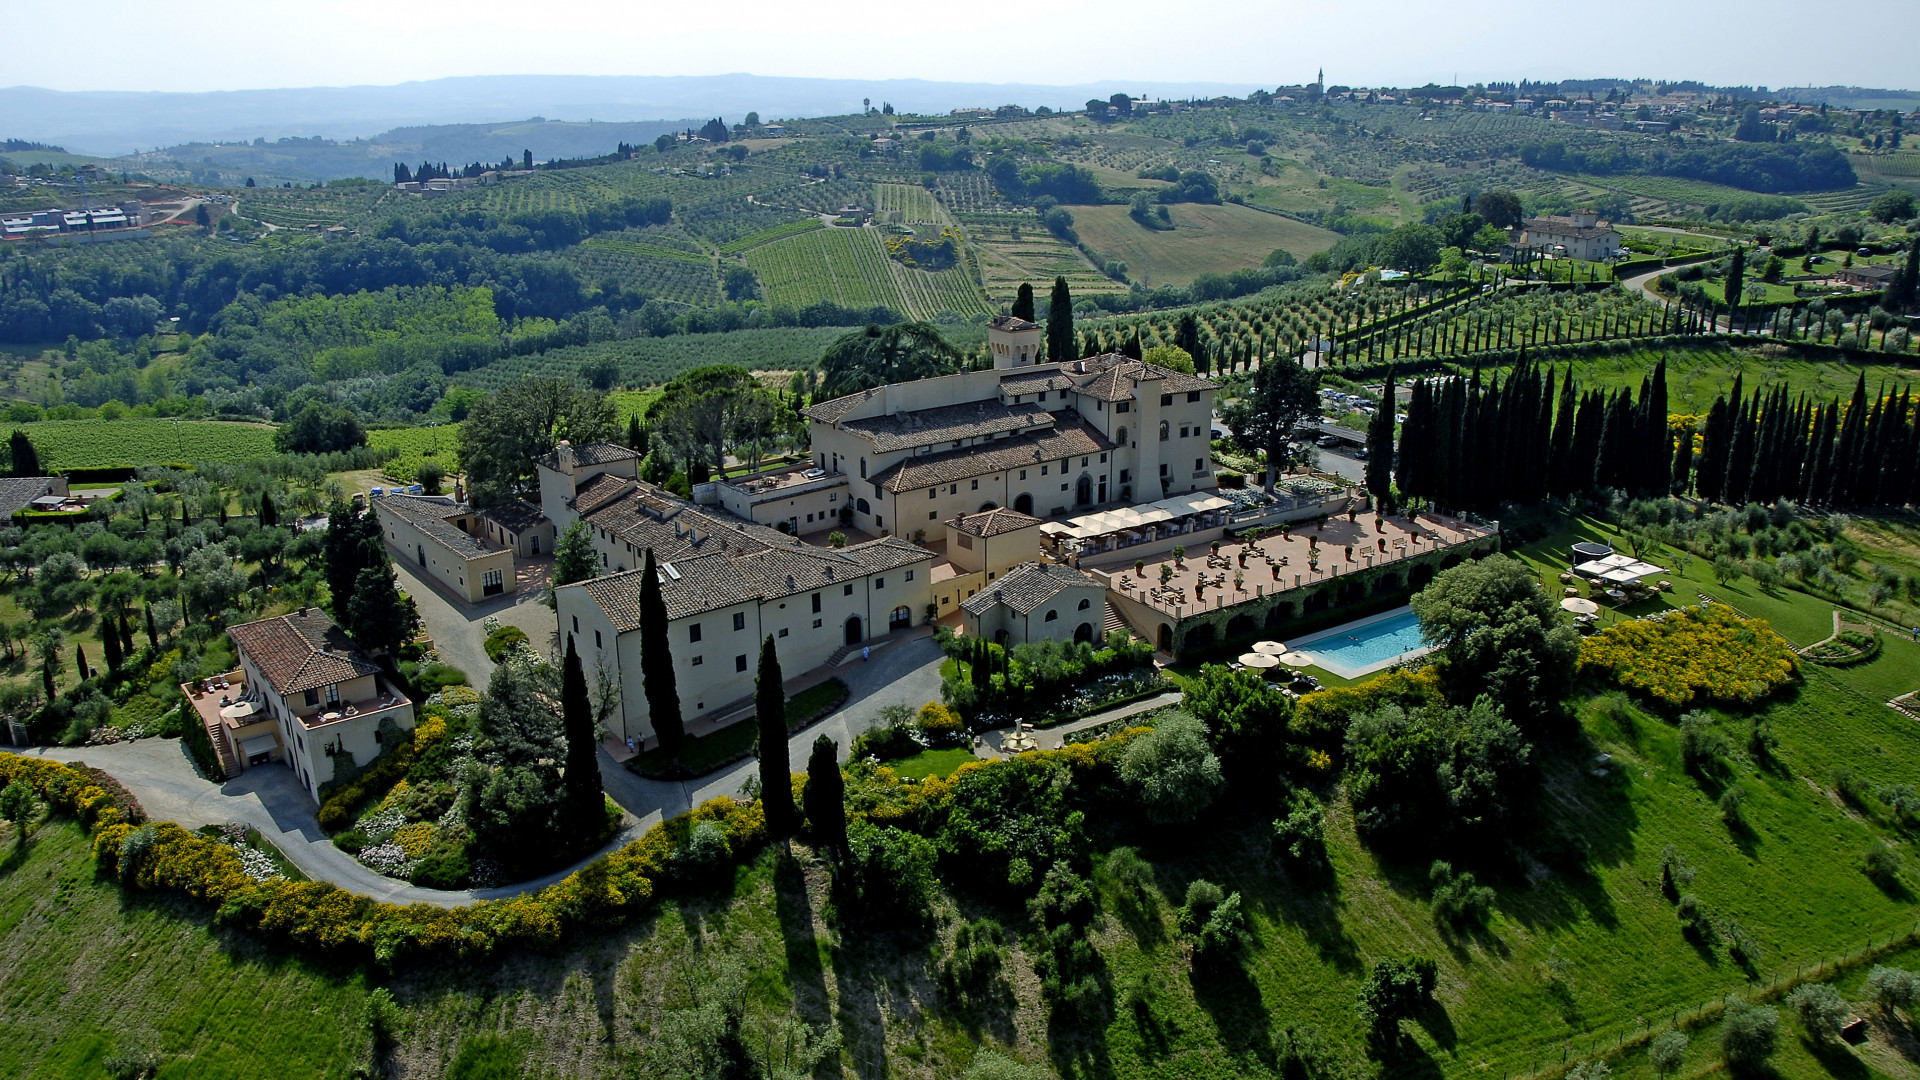 Aerial view of the Castello del Nero hotel